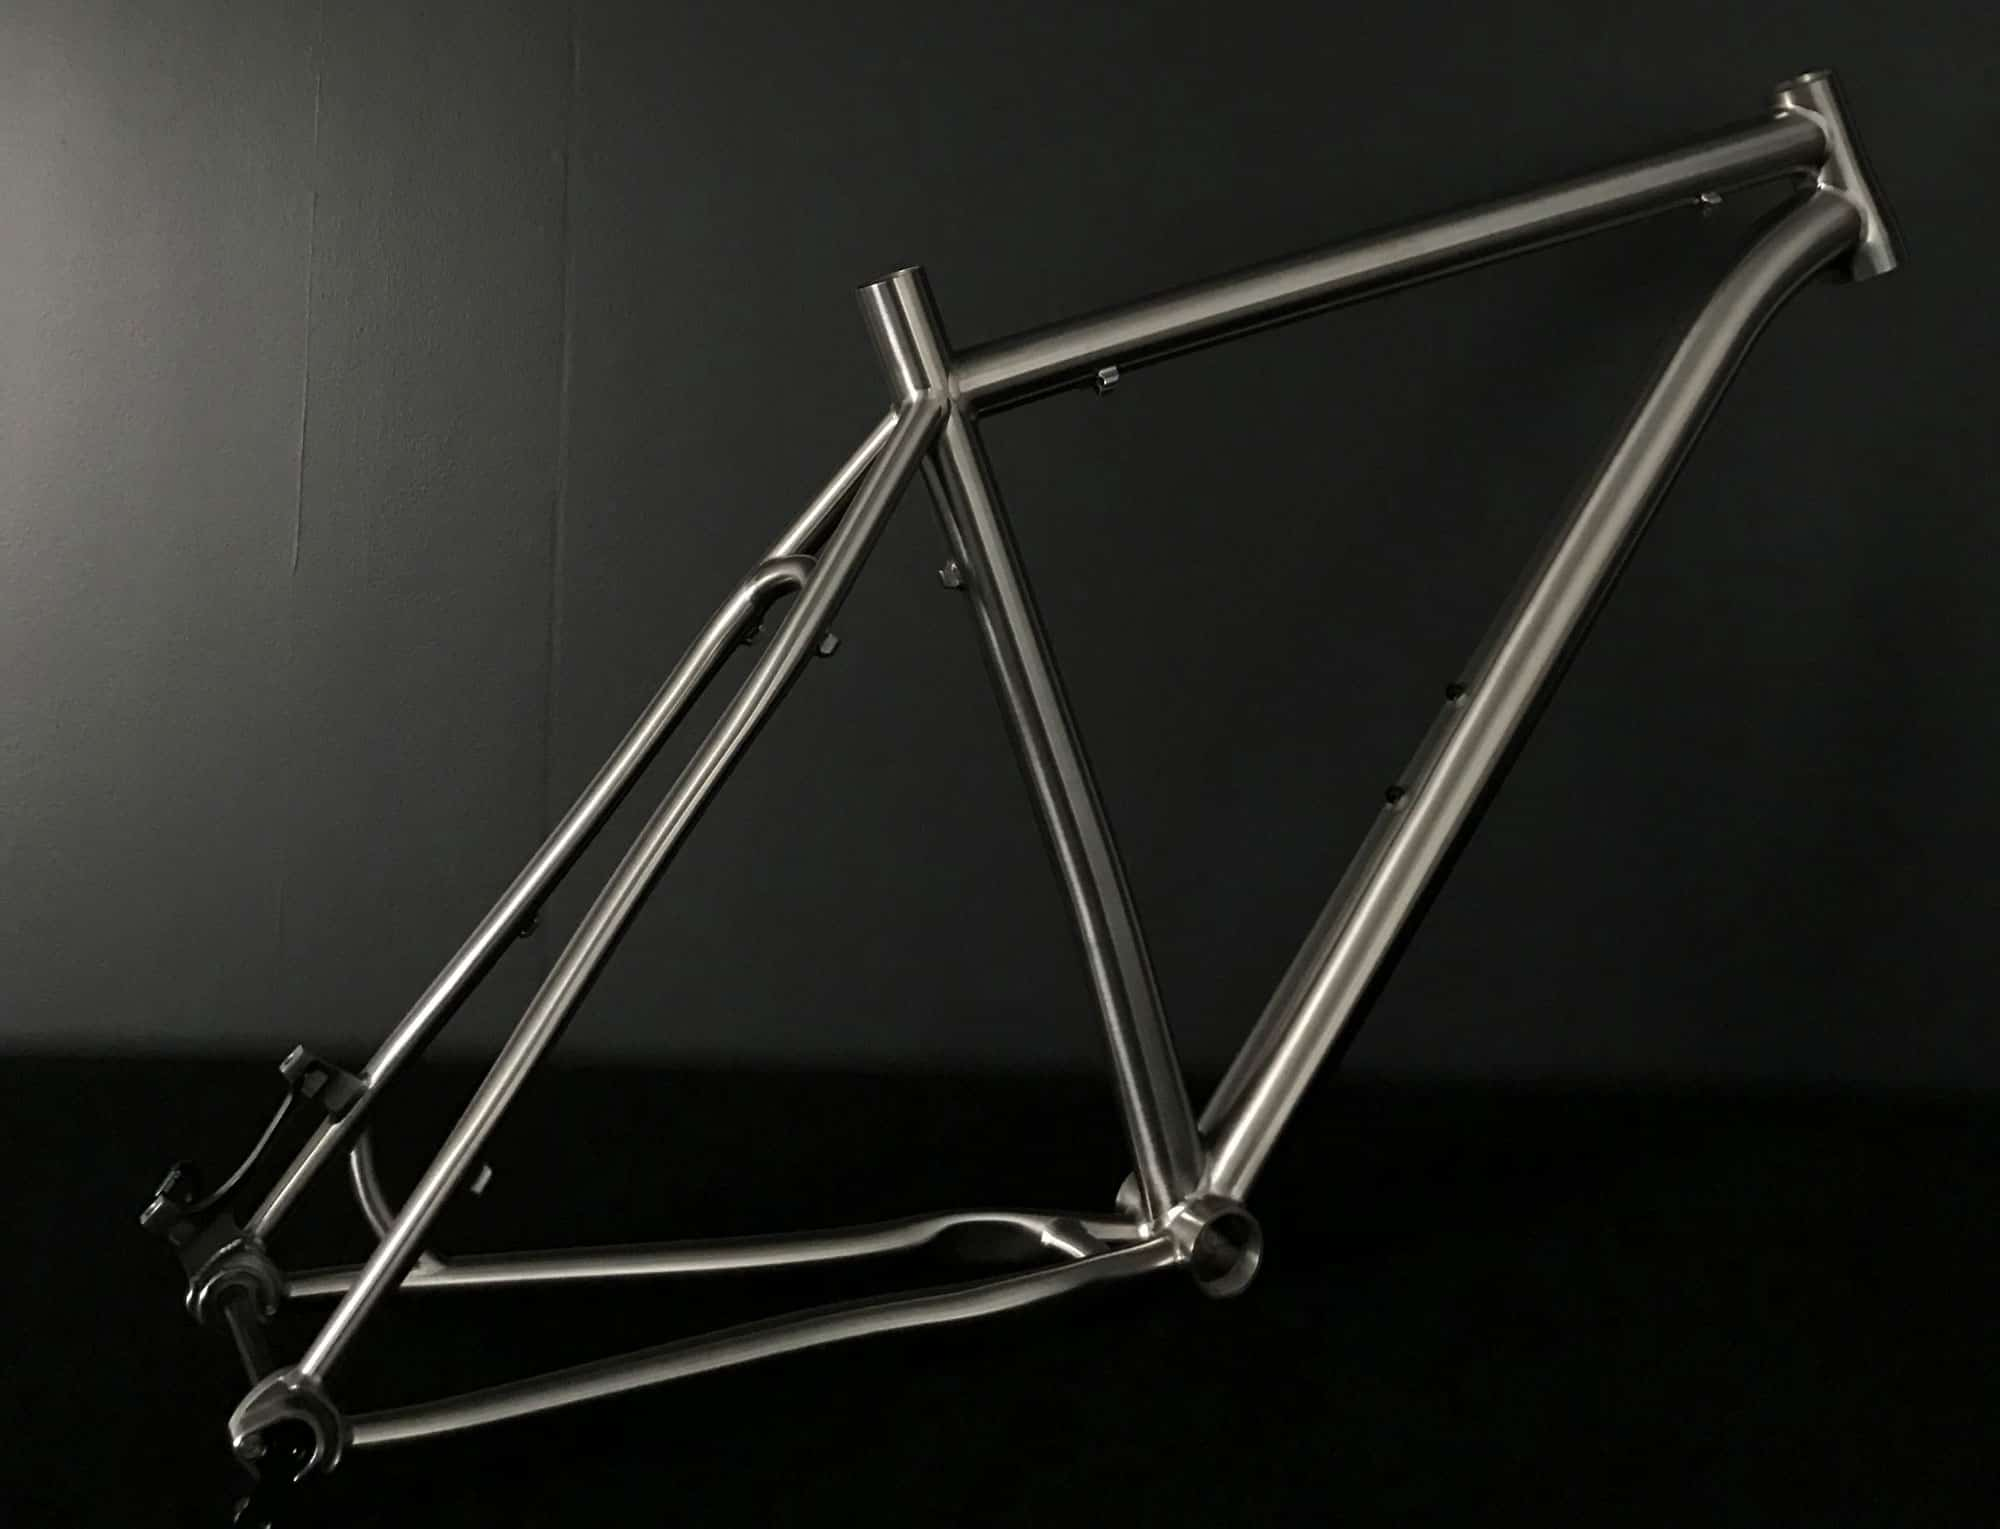 24eb611de286 VAARU Cycles 650B Switch Titanium Hardtail Frame